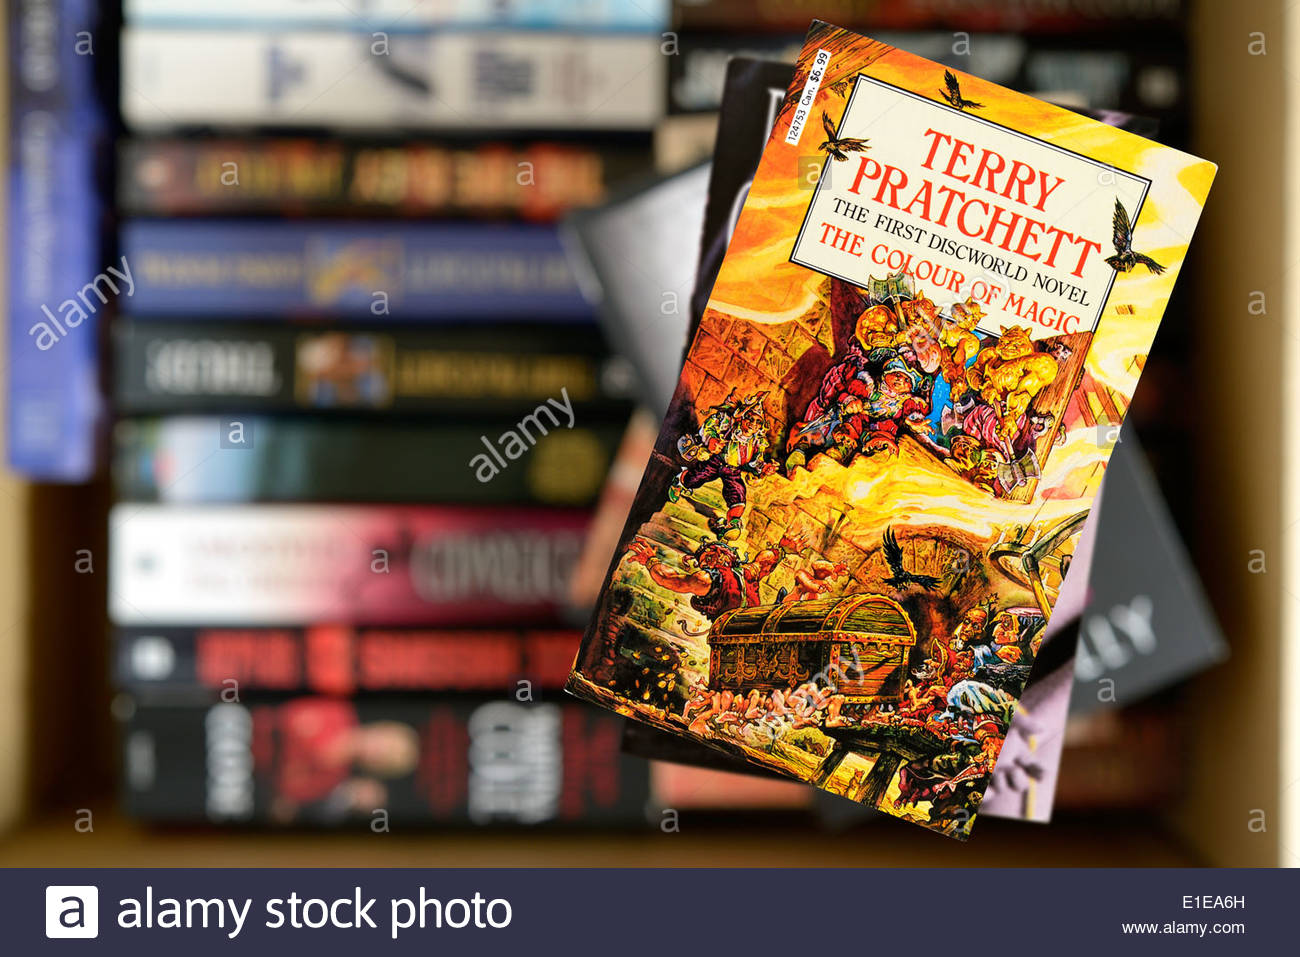 stock photo terry pratchett first discworld novel the colour of magic paperback title stacked used books england - The Color Of Magic Book